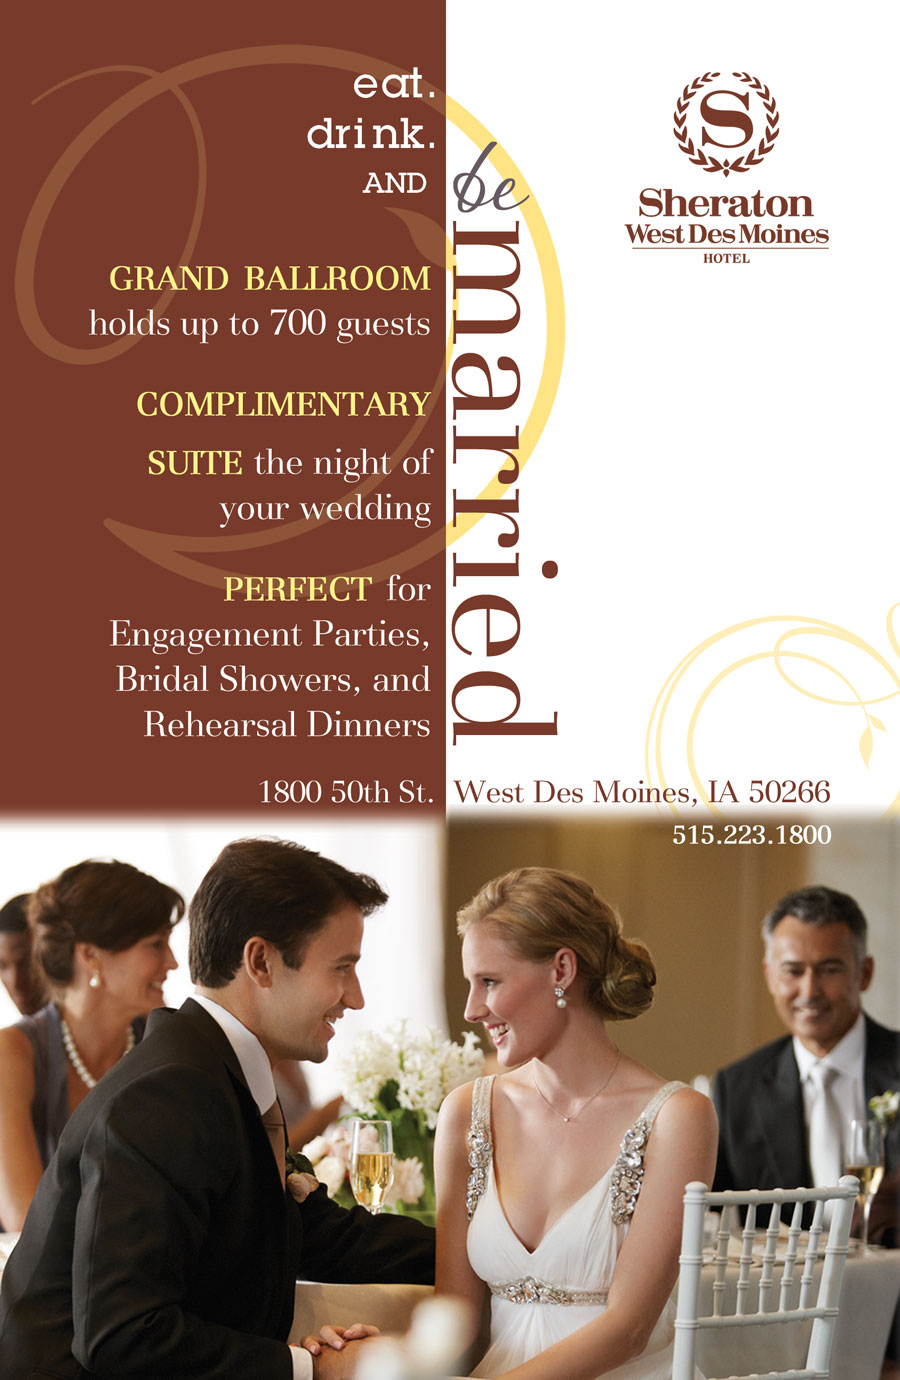 Wedding Ad for Sheraton West Des Moines